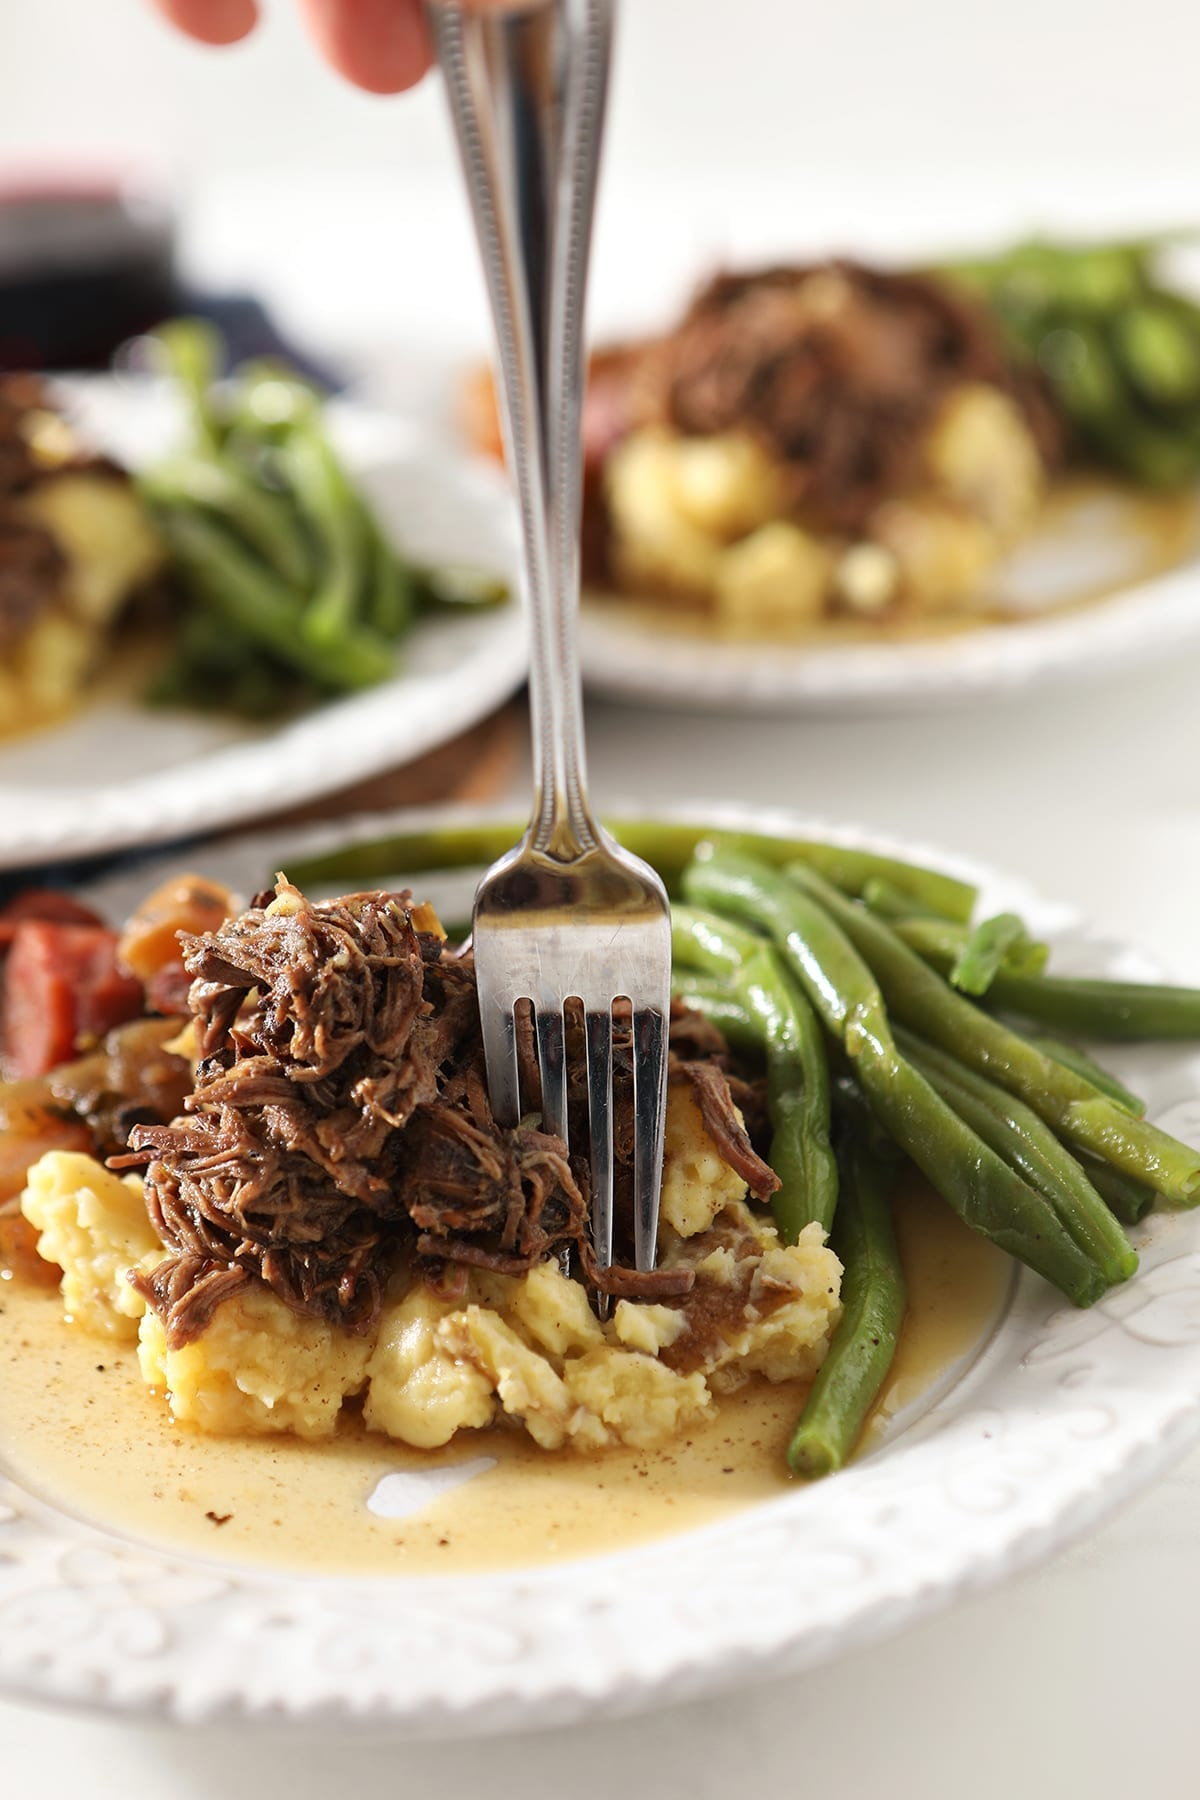 Close up of a fork sticking shredded slow cooker pot roast on top of mashed potatoes and next to steamed green beans